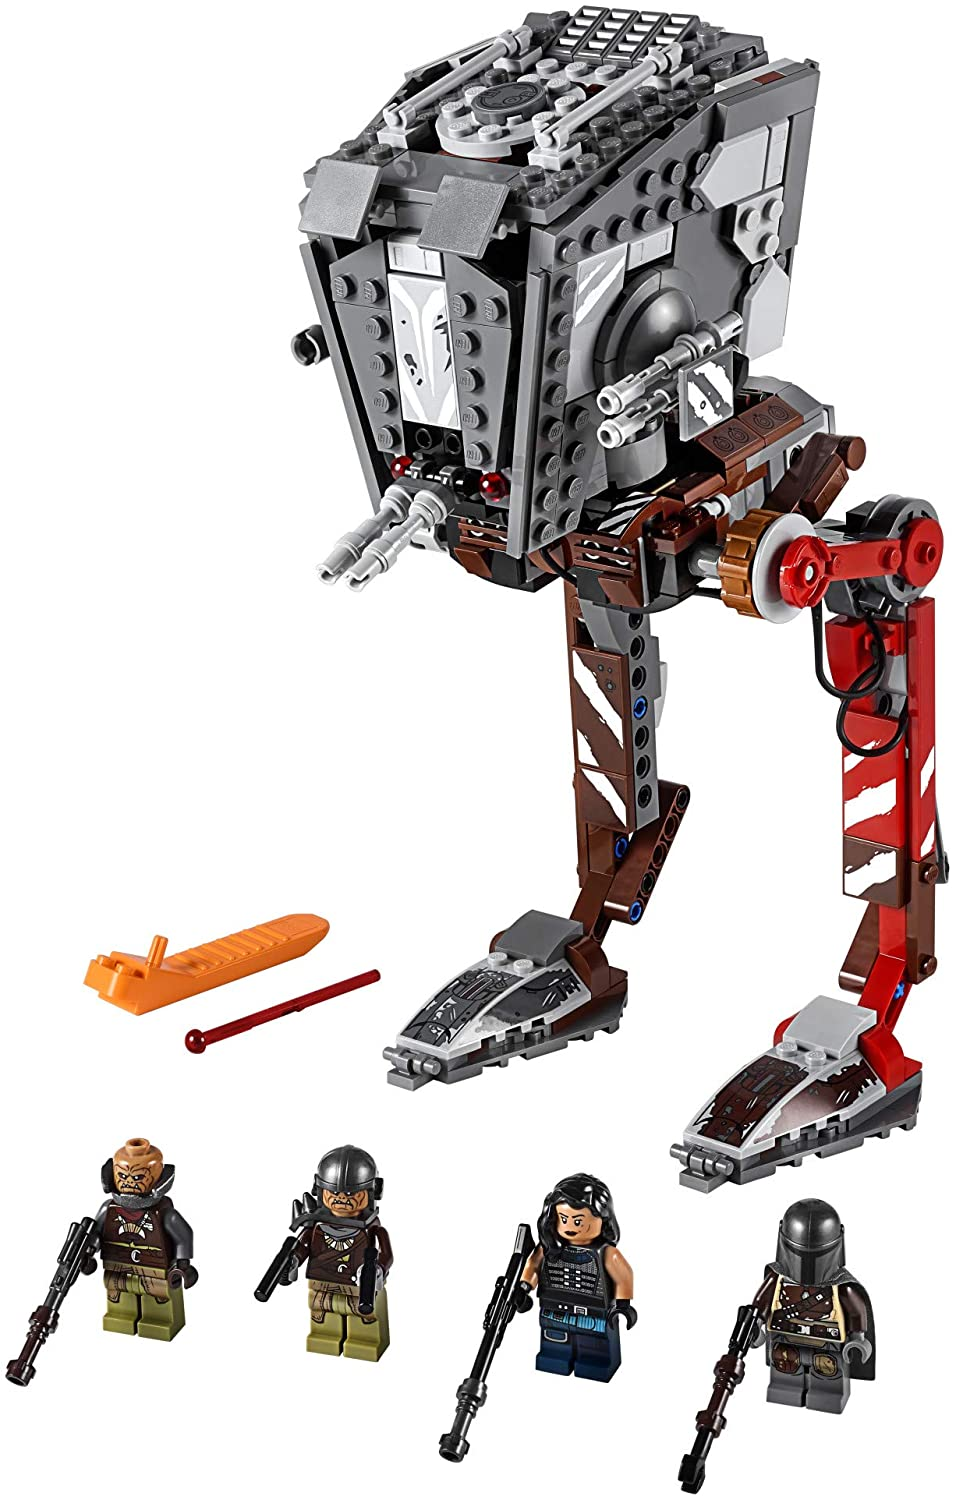 Star Wars TM Invasor AT-ST - Lego 75254